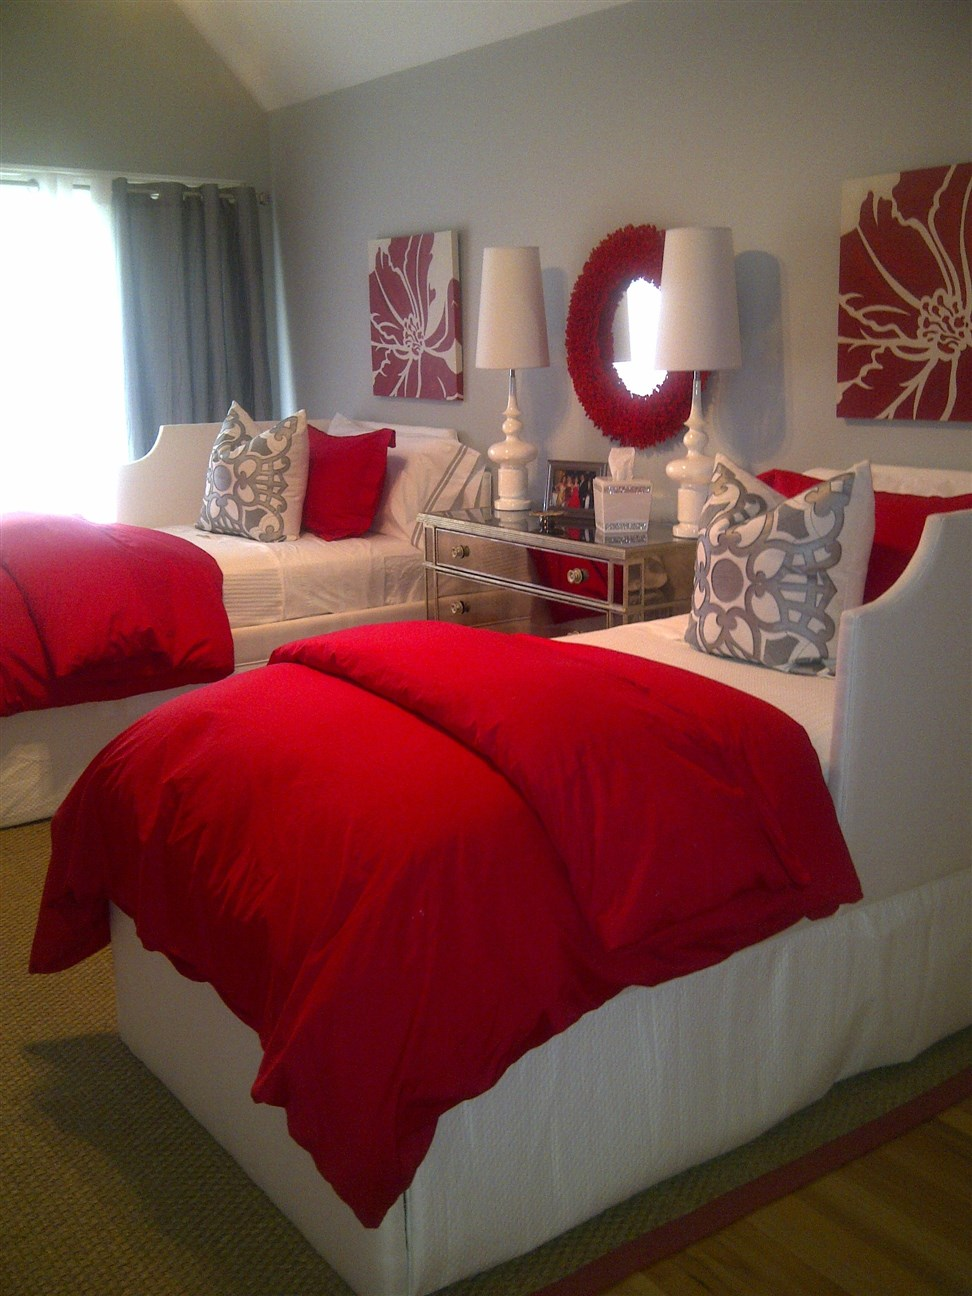 Bedroom with two beds